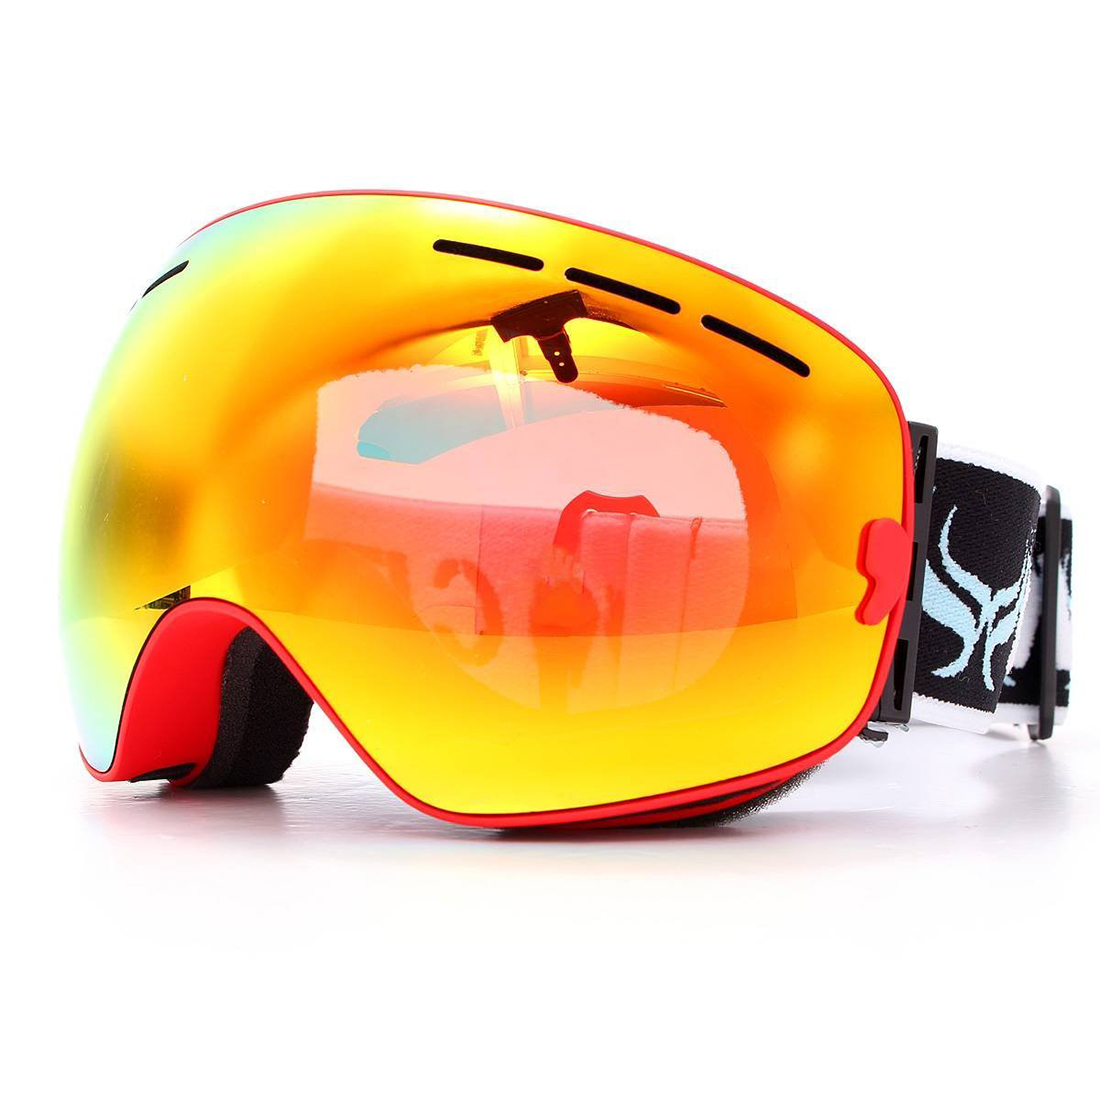 BENICE ski goggles double layer anti-fog eyes red frame